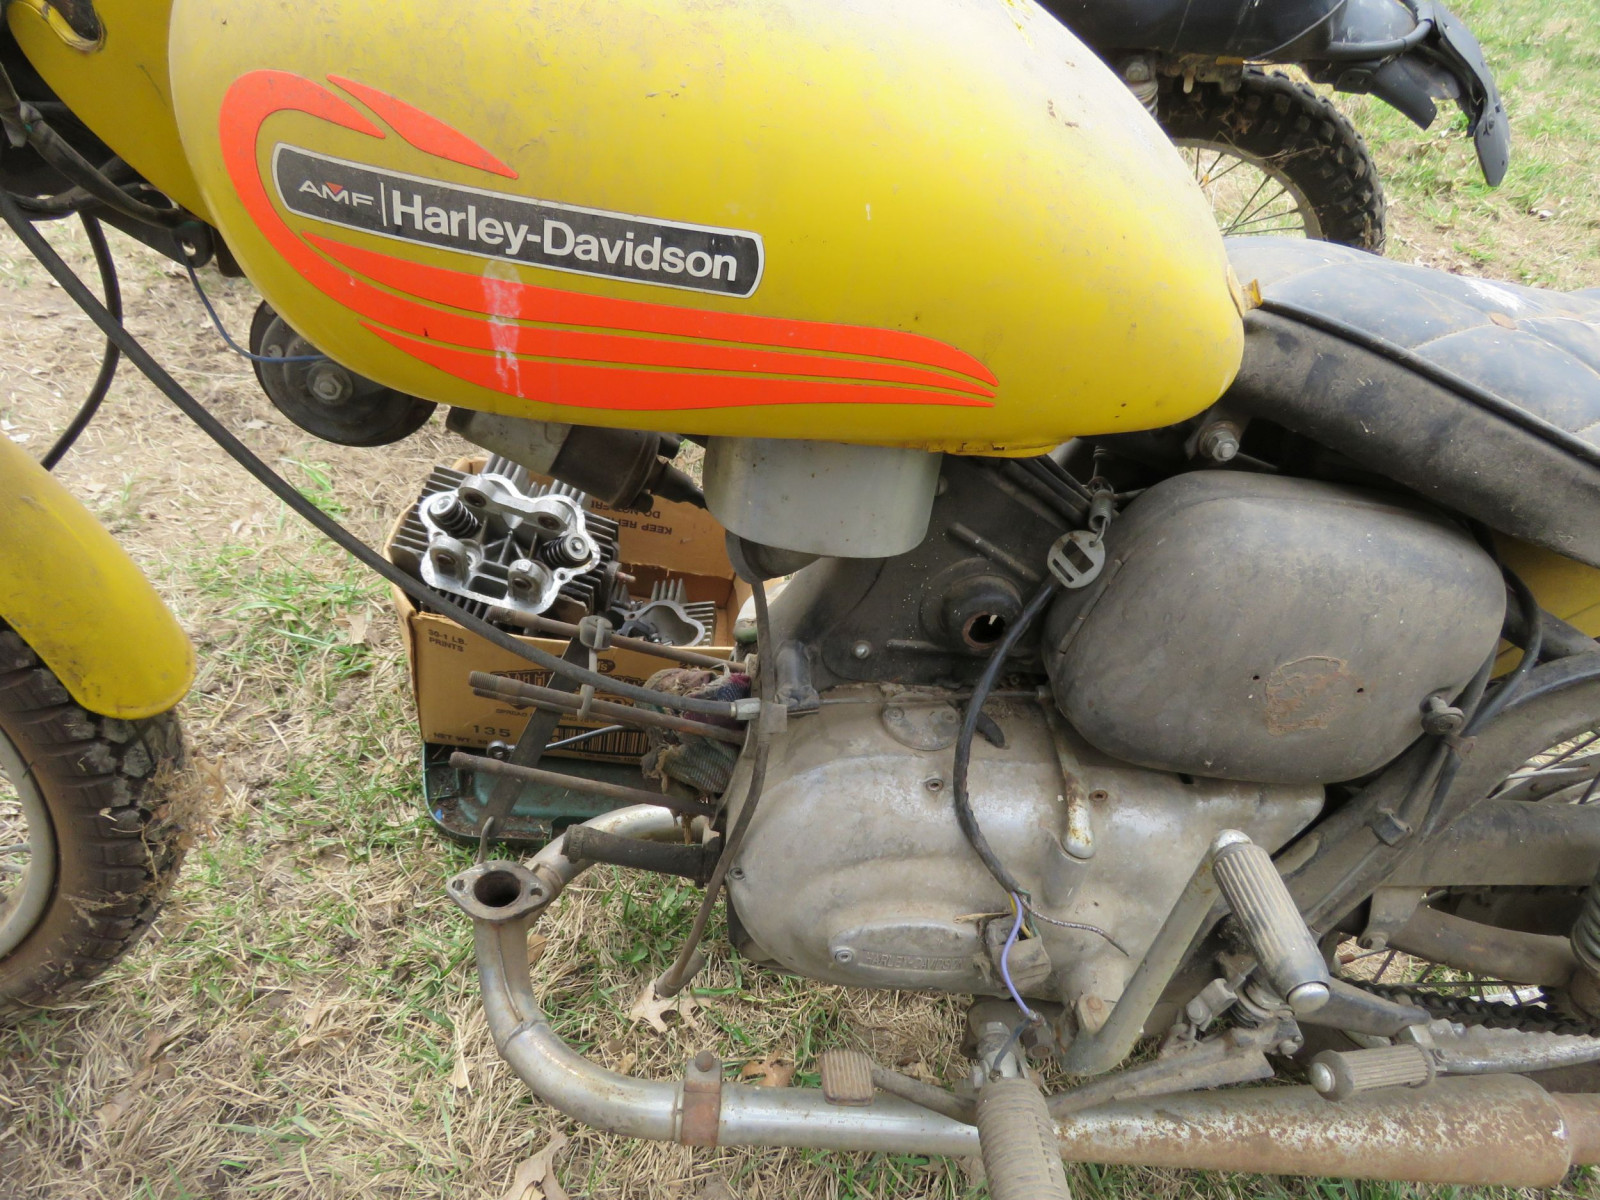 1971 Harley Davidson-AMF H2 Sprint GS350 Motorcycle for Project - Image 4